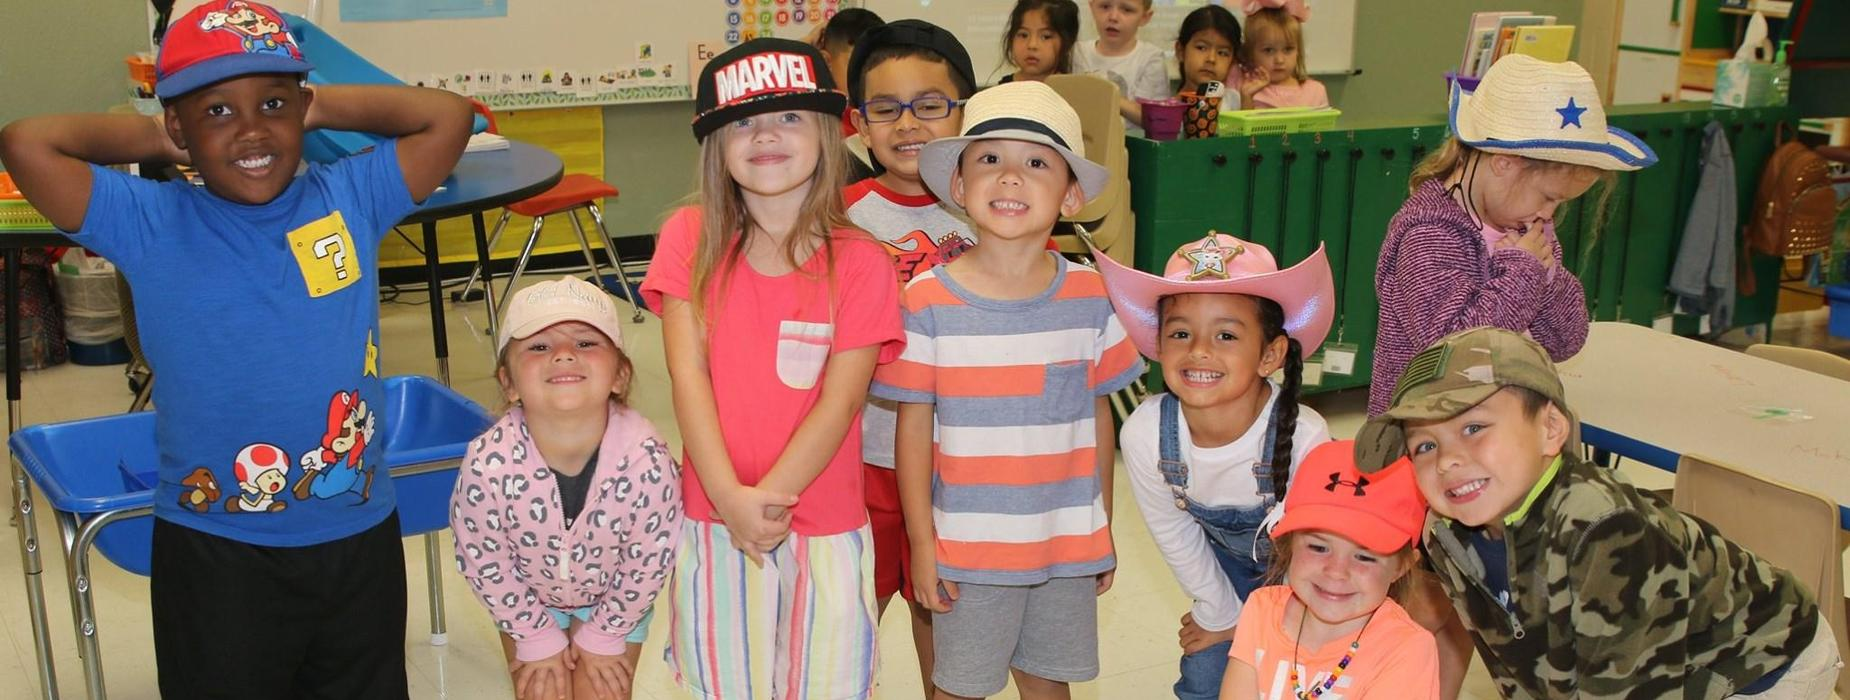 Hat day at school!